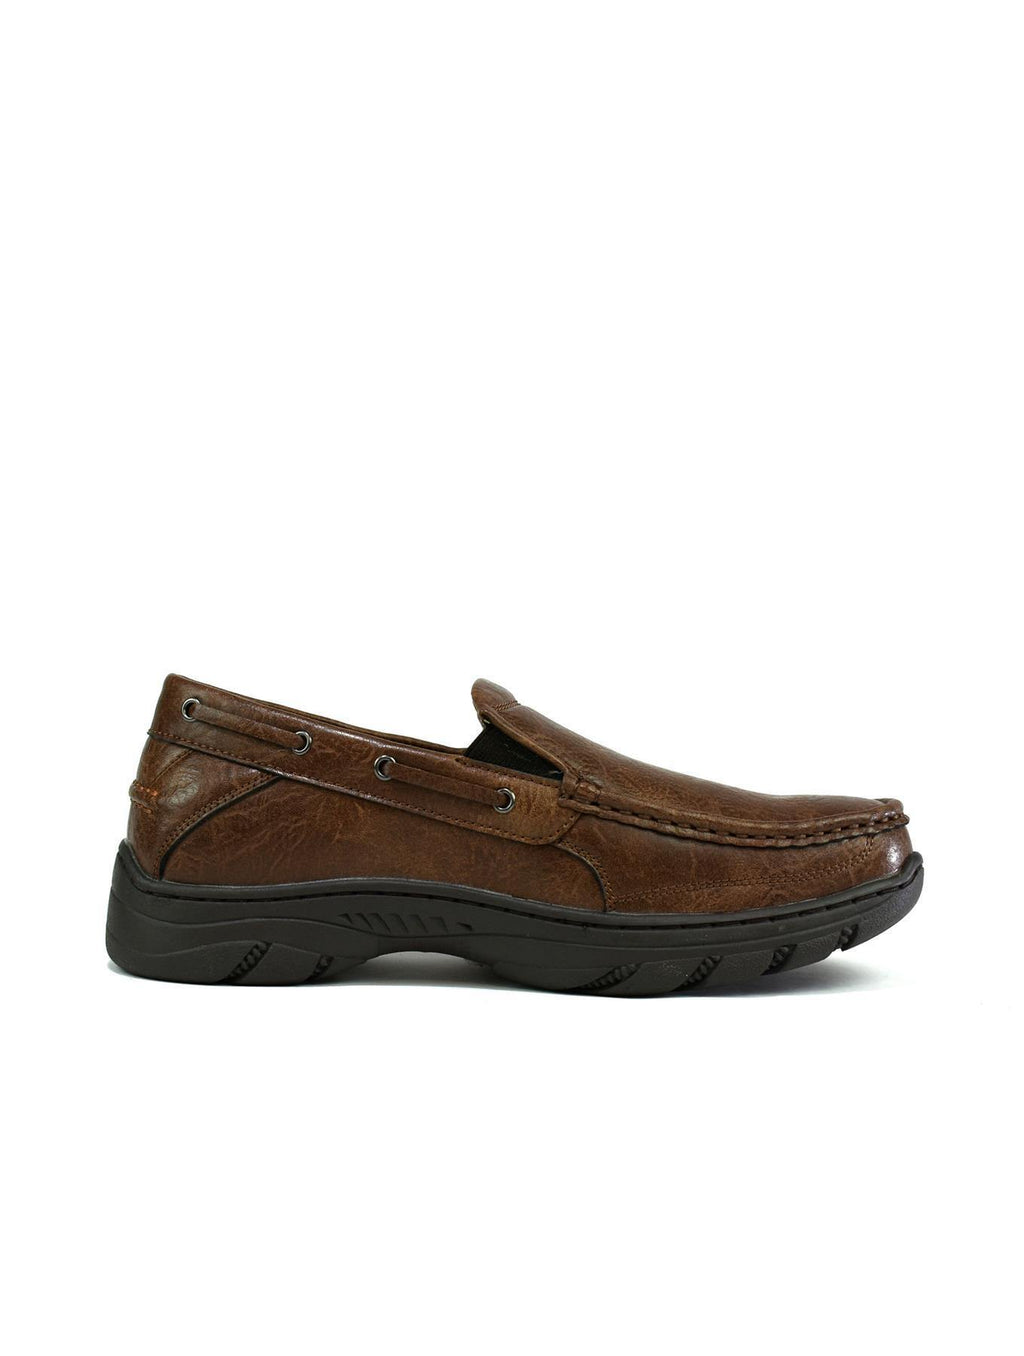 Men's Thick Sole Slip On Walking Shoes Brown - DadiTude